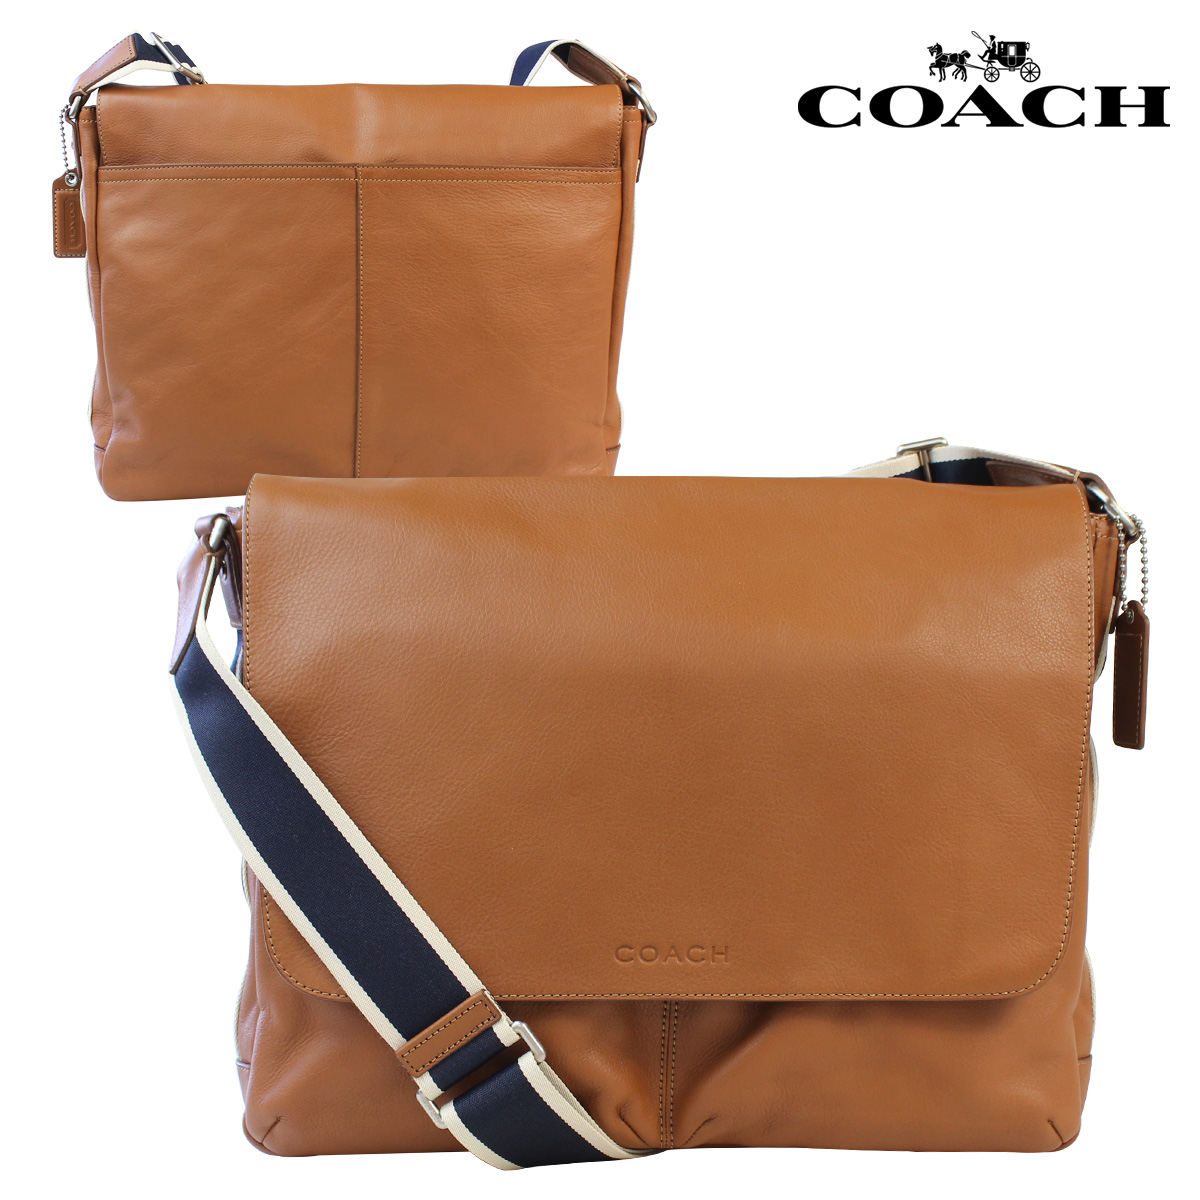 Coach Mens Messenger Bag Saddle Hwl Leather